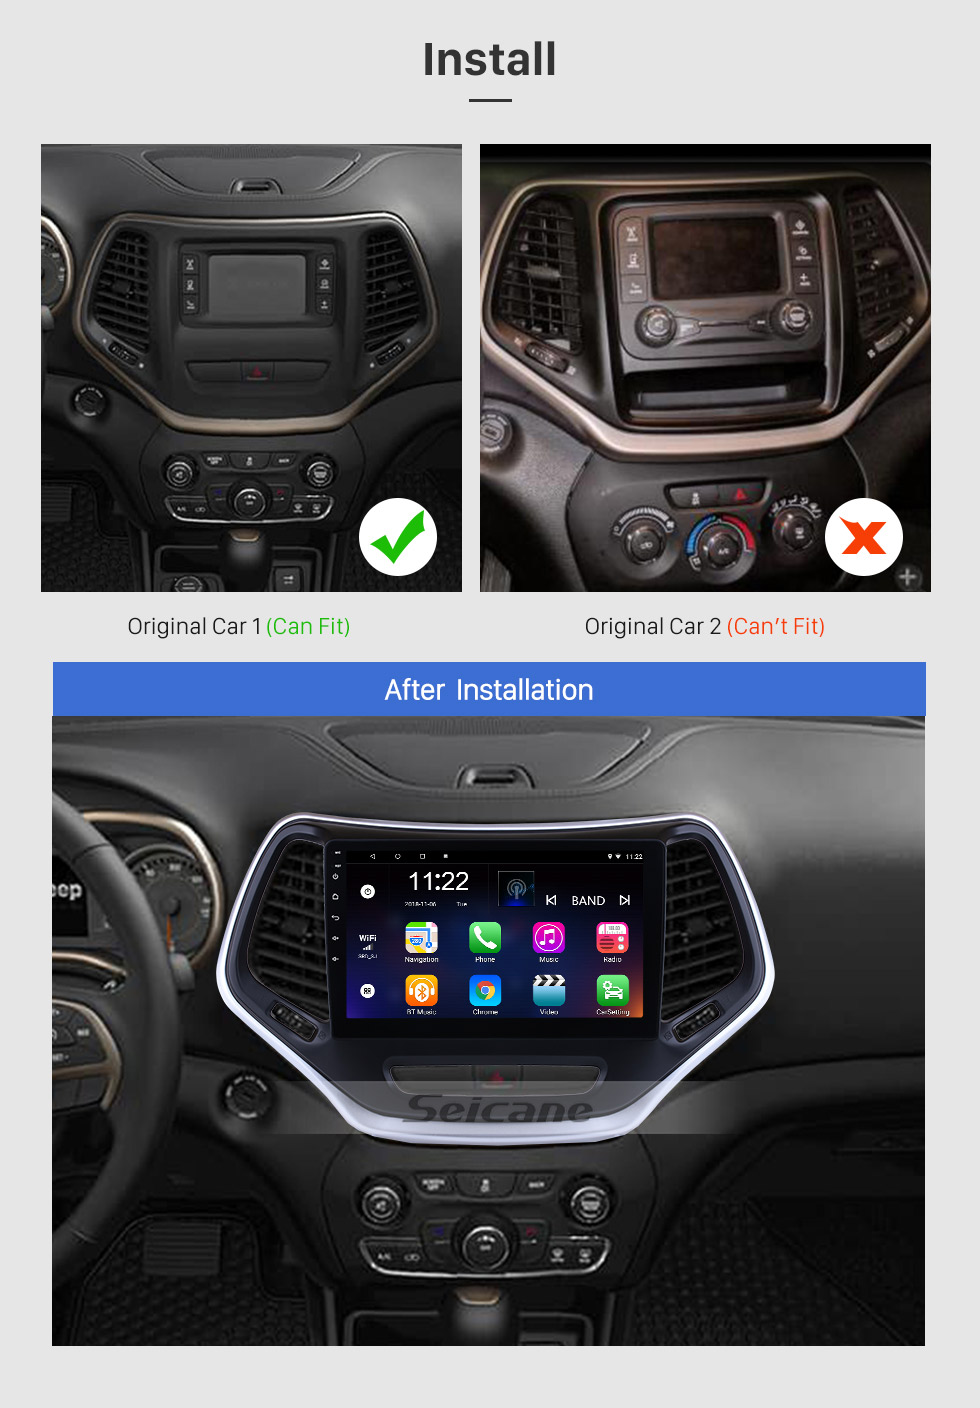 Seicane 2016 Jeep Grand Cherokee 10.1 inch Android 8.1 Touchscreen Radio GPS Navigation System WIFI Bluetooth Steering Wheel Control support OBD2 DVR Backup Camera